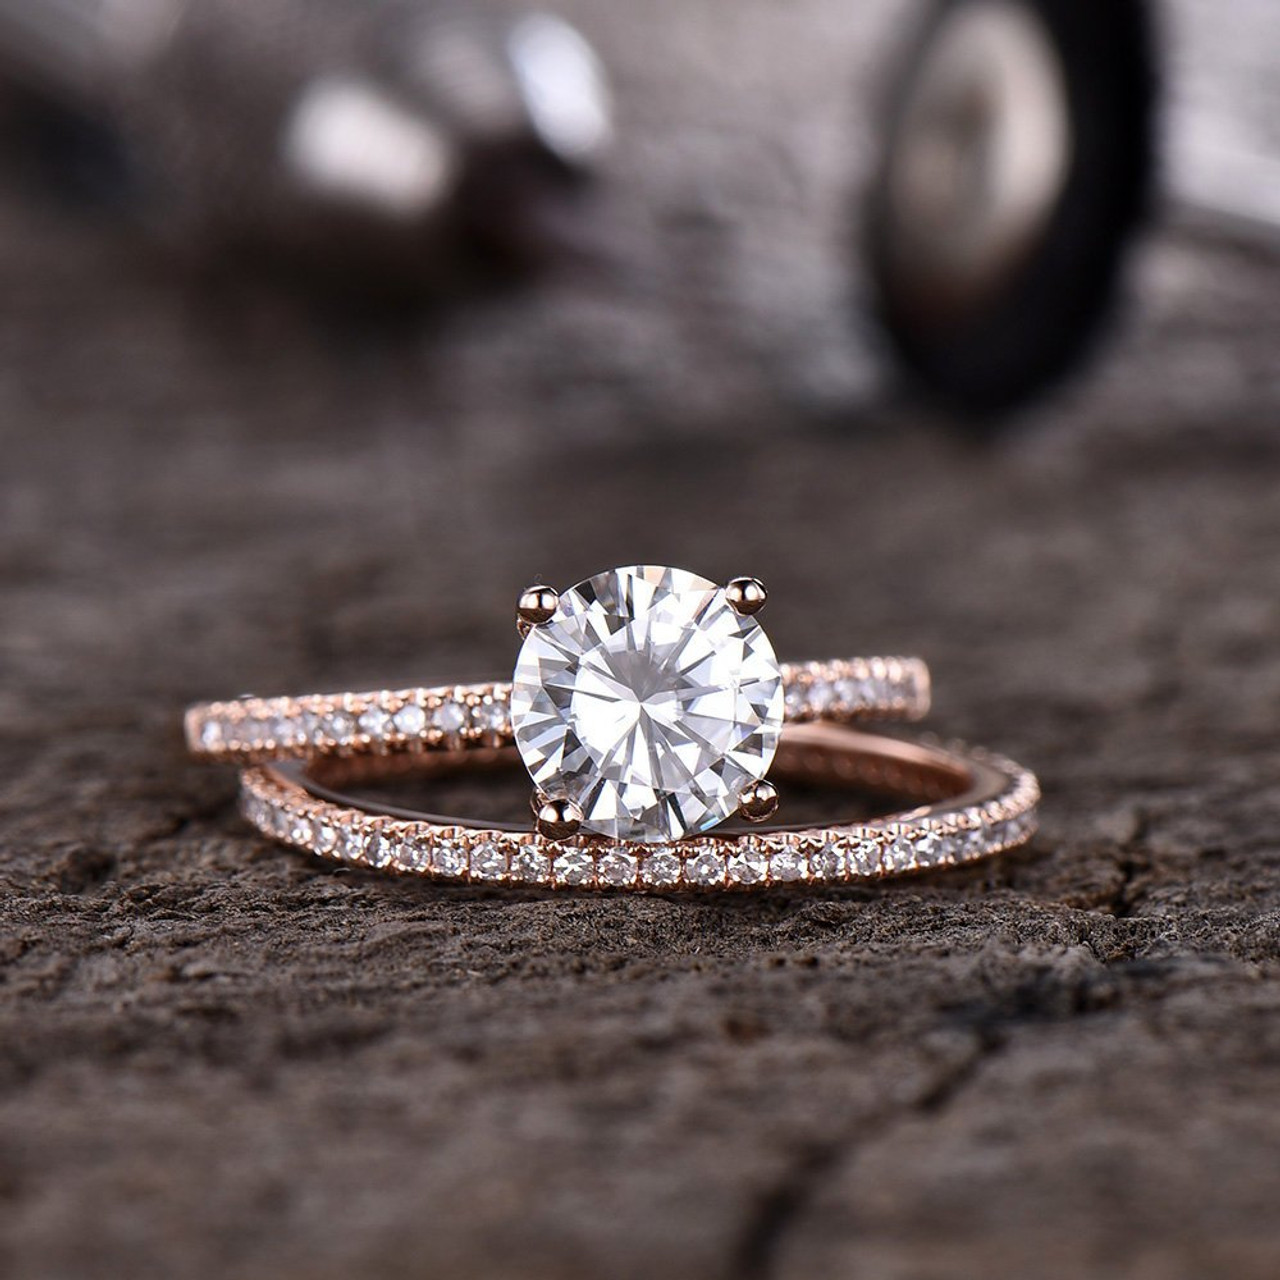 Forever One Moissanite Engagement Ring Full Eternity Diamond Wedding Band Bridal Set 7mm Round Solitaire Ring 14K Rose Gold D-E-F Colorless